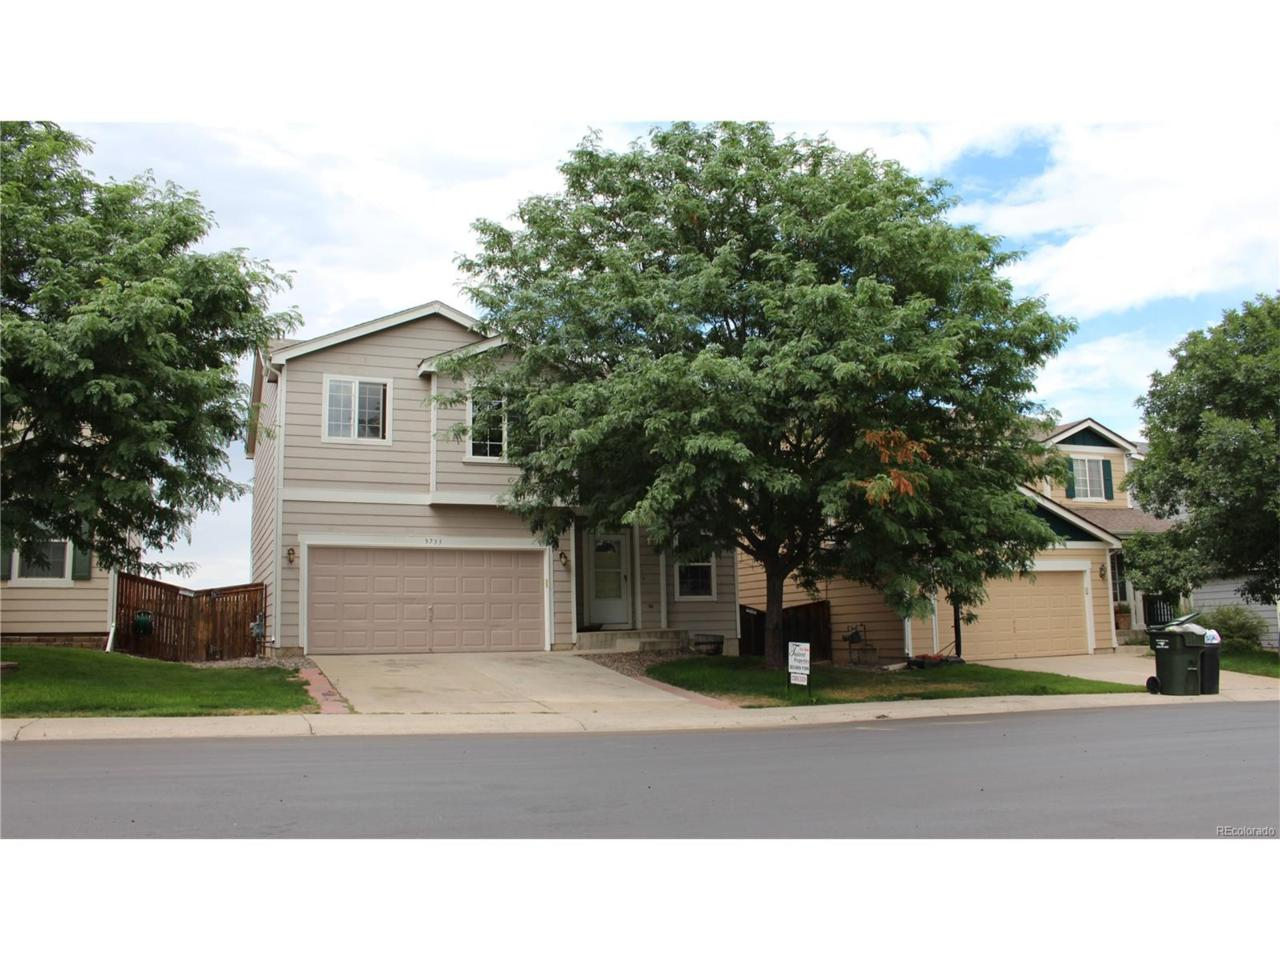 9733 Gatesbury Circle, Highlands Ranch, CO 80126 (MLS #5667603) :: 8z Real Estate